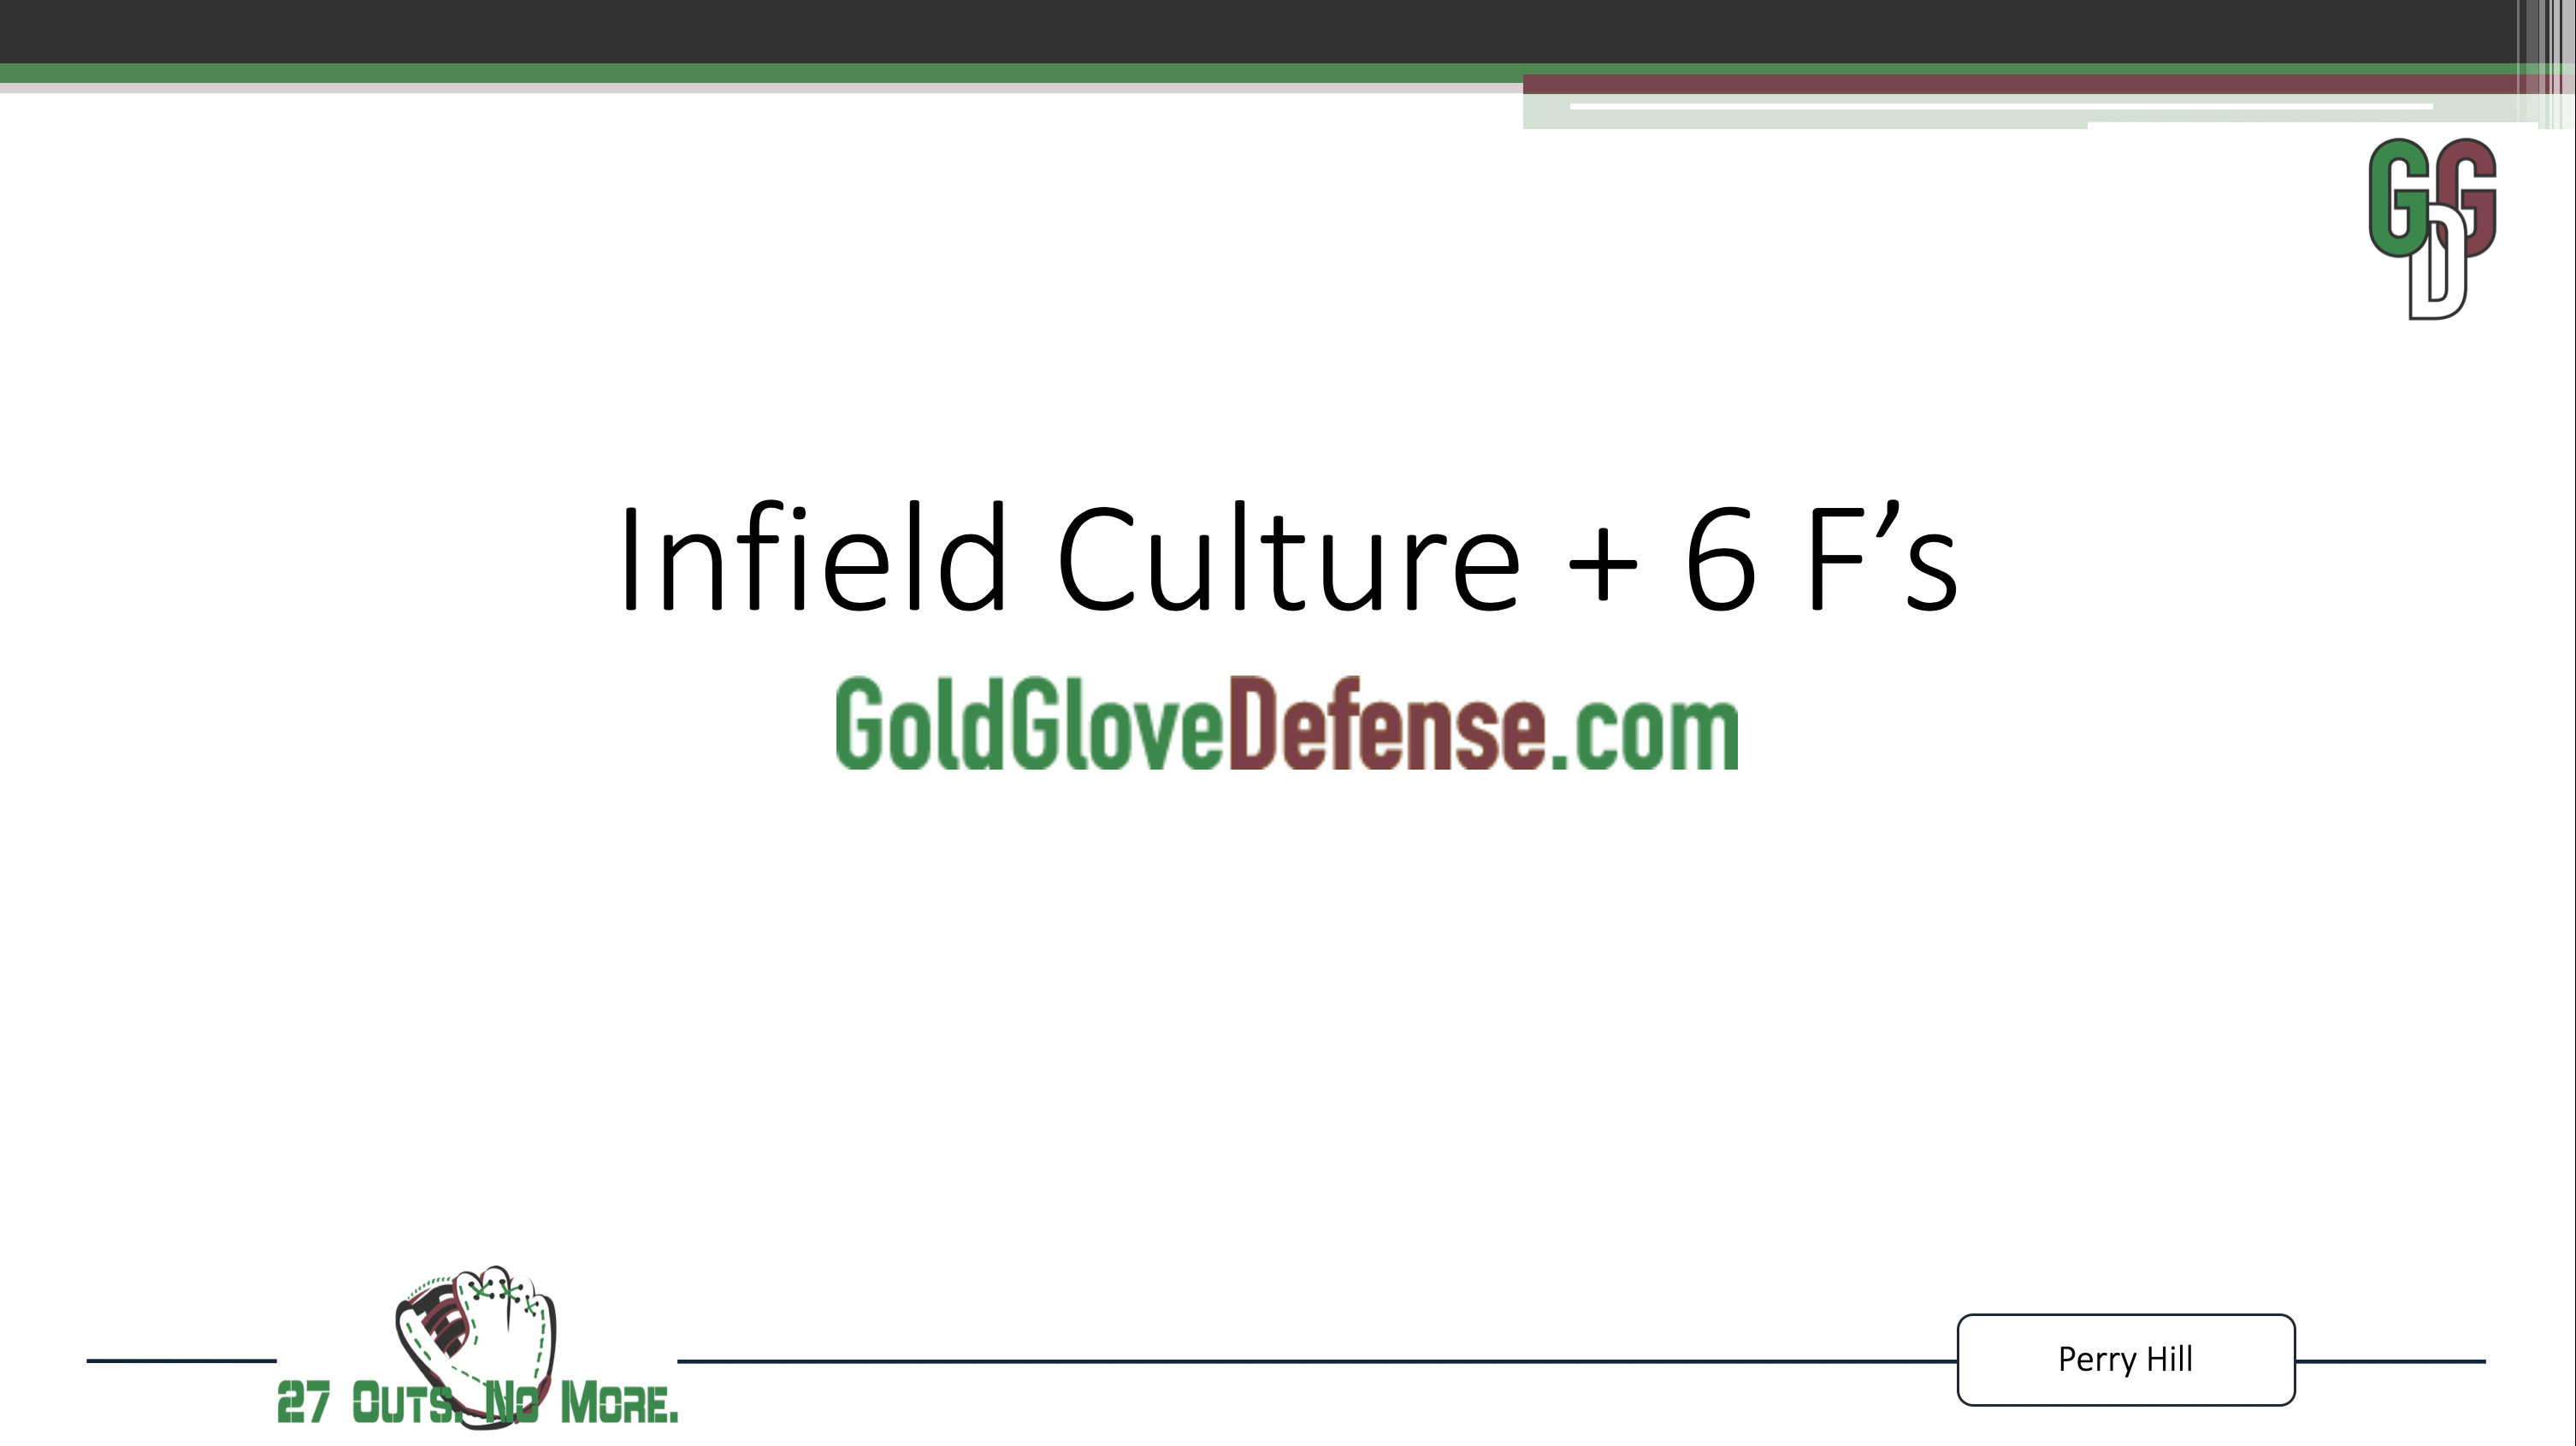 Perry Hill presentation - Infield Culture and 6Fs